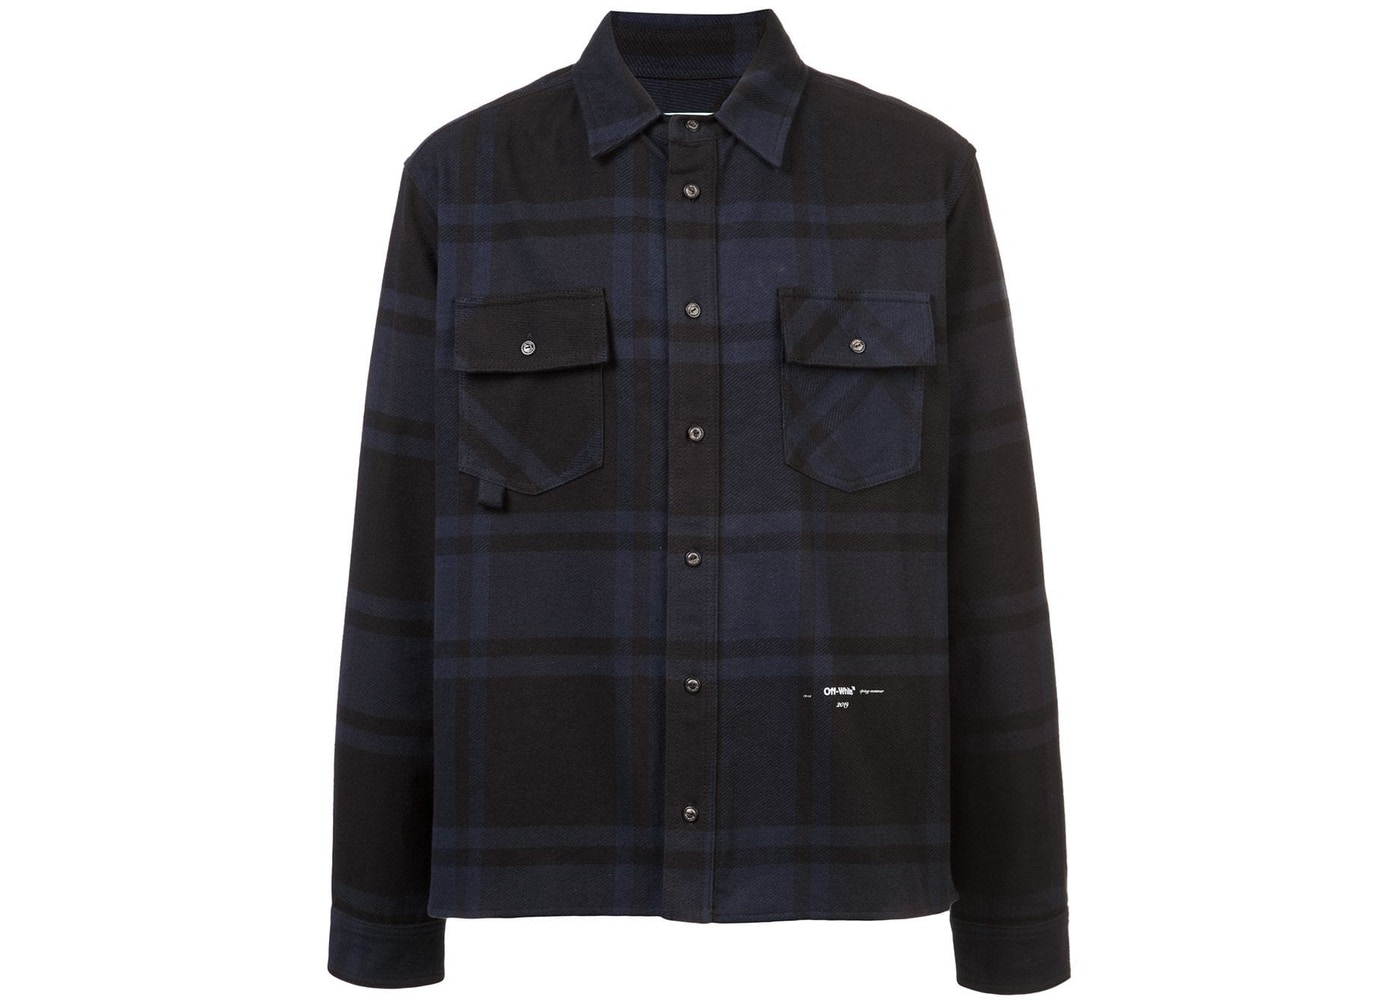 10d57e03 OFF-WHITE Embellished Checkered Flannel Shirt Blue/Black. Embellished  Checkered Flannel